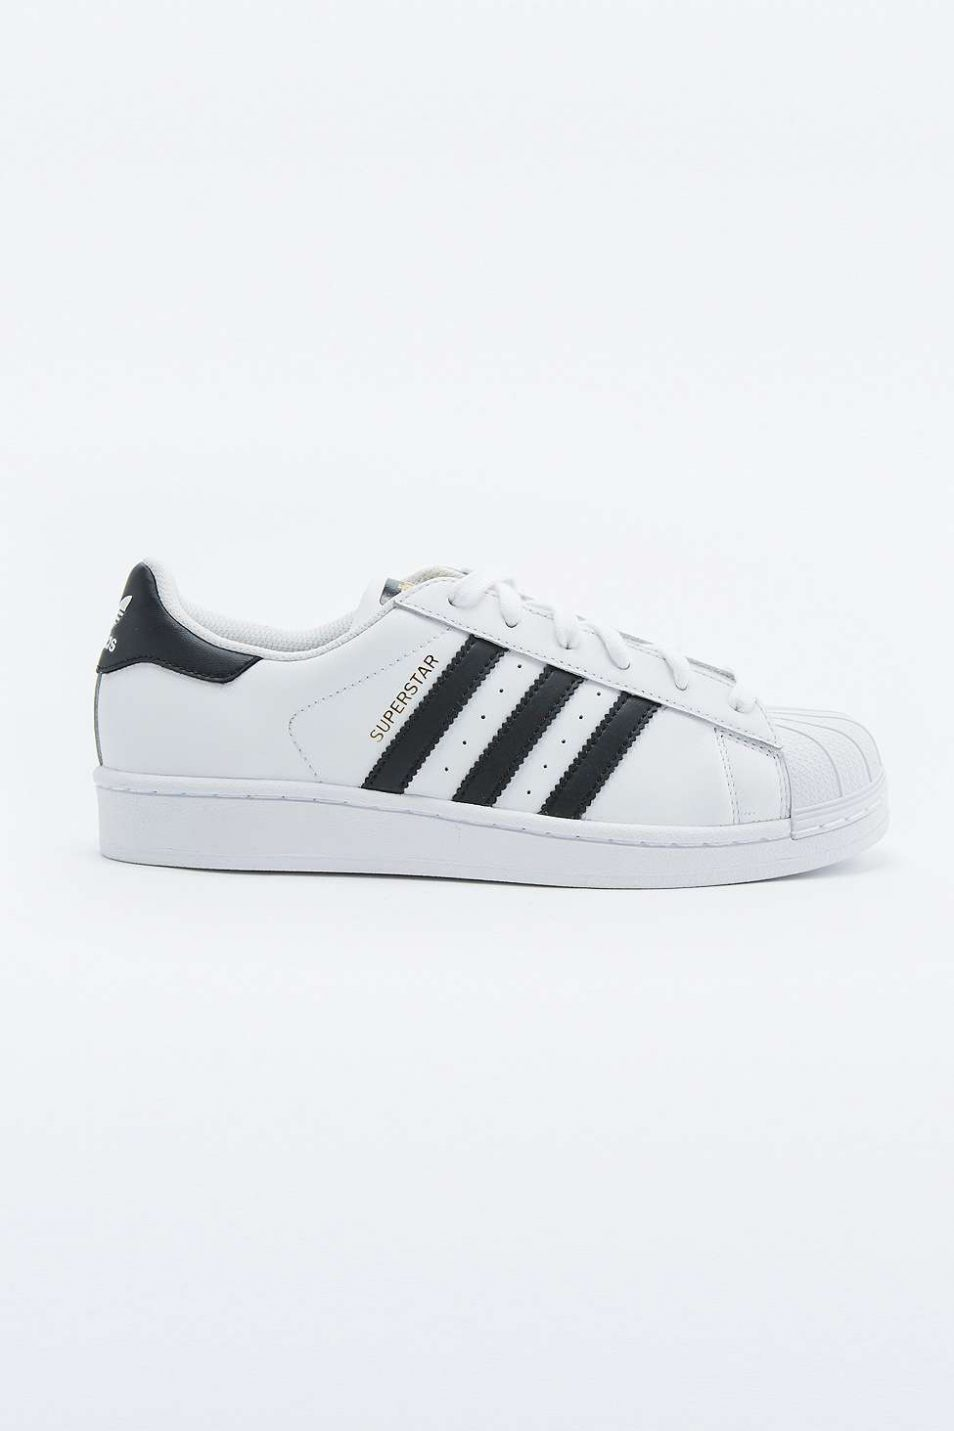 adidas Originals Superstar White and Black Trainers 2